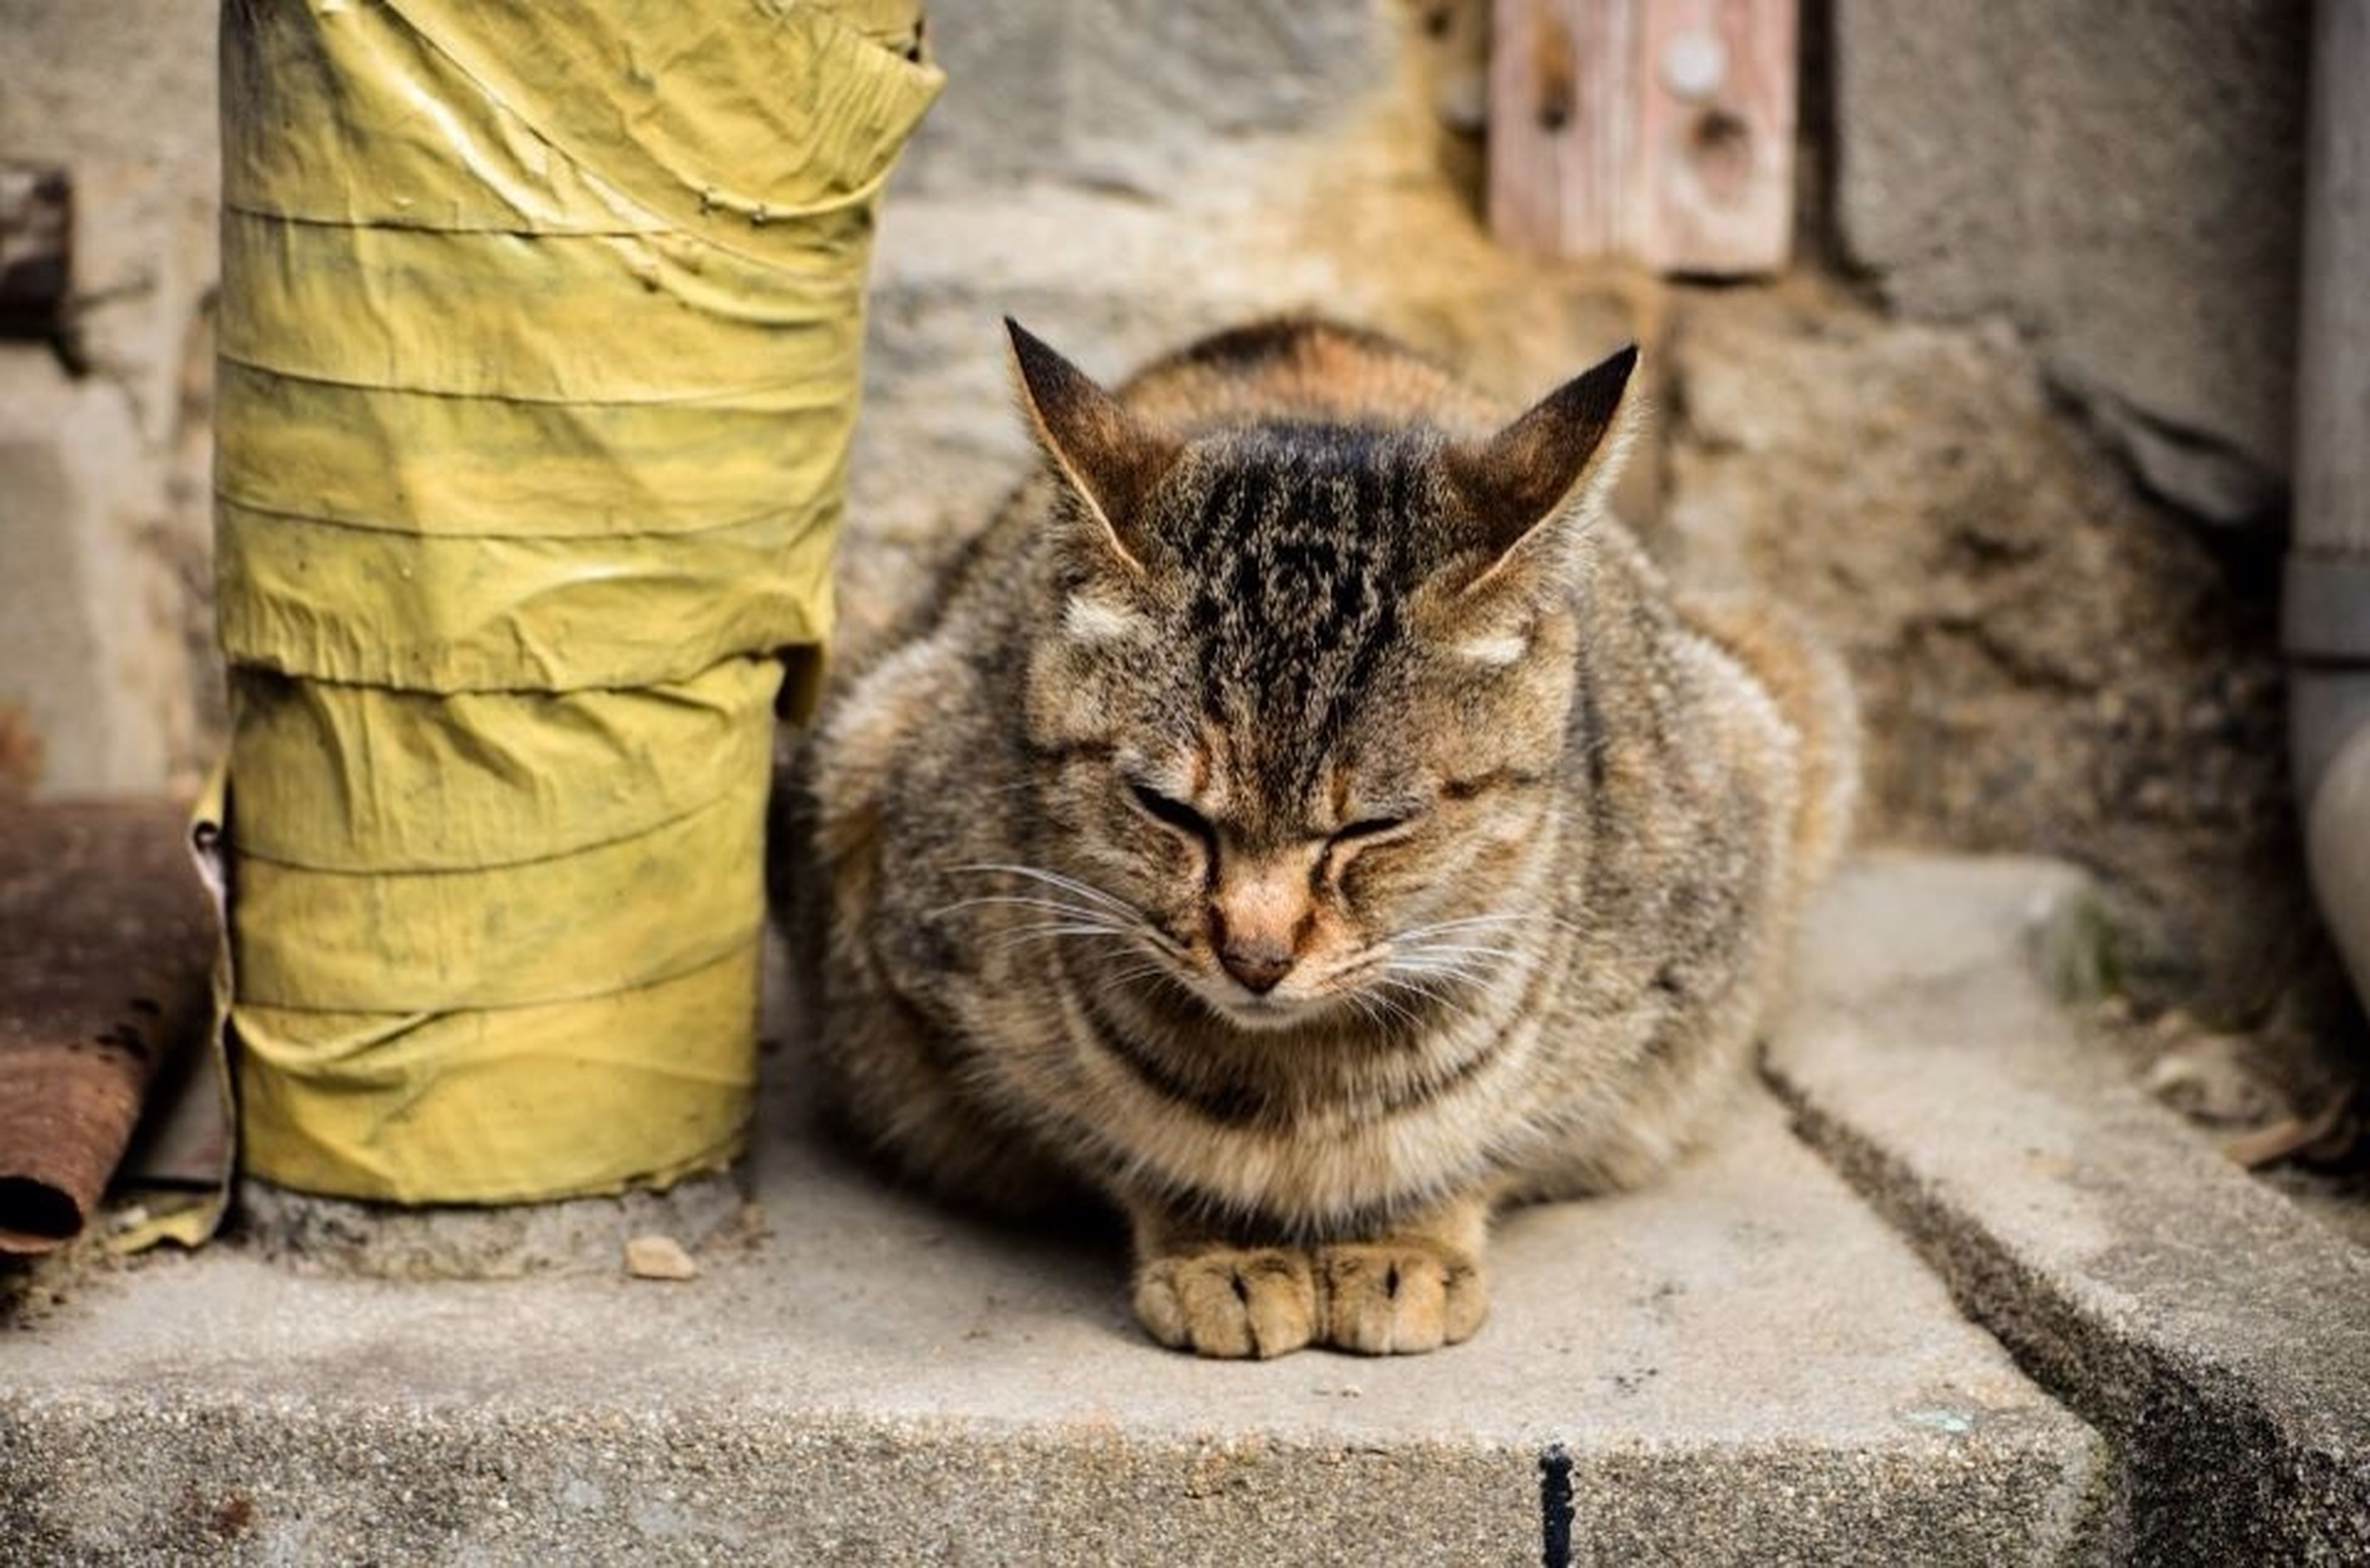 domestic cat, animal themes, domestic animals, cat, pets, one animal, mammal, feline, whisker, relaxation, street, sleeping, sitting, tabby, resting, lying down, day, outdoors